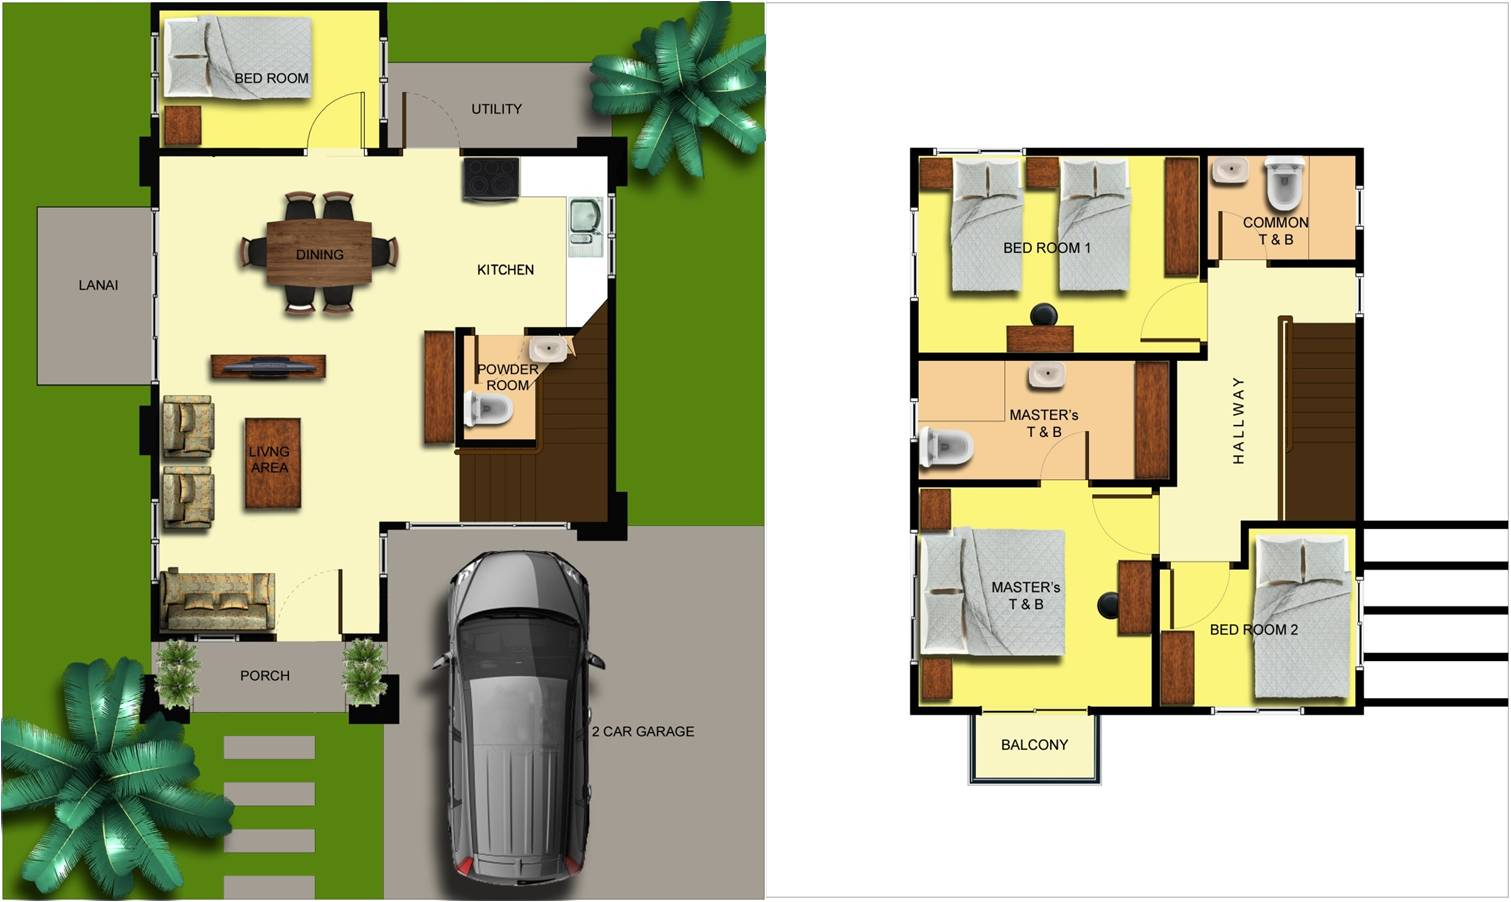 Amusing Single Detached House Floor Plan Images Image design house